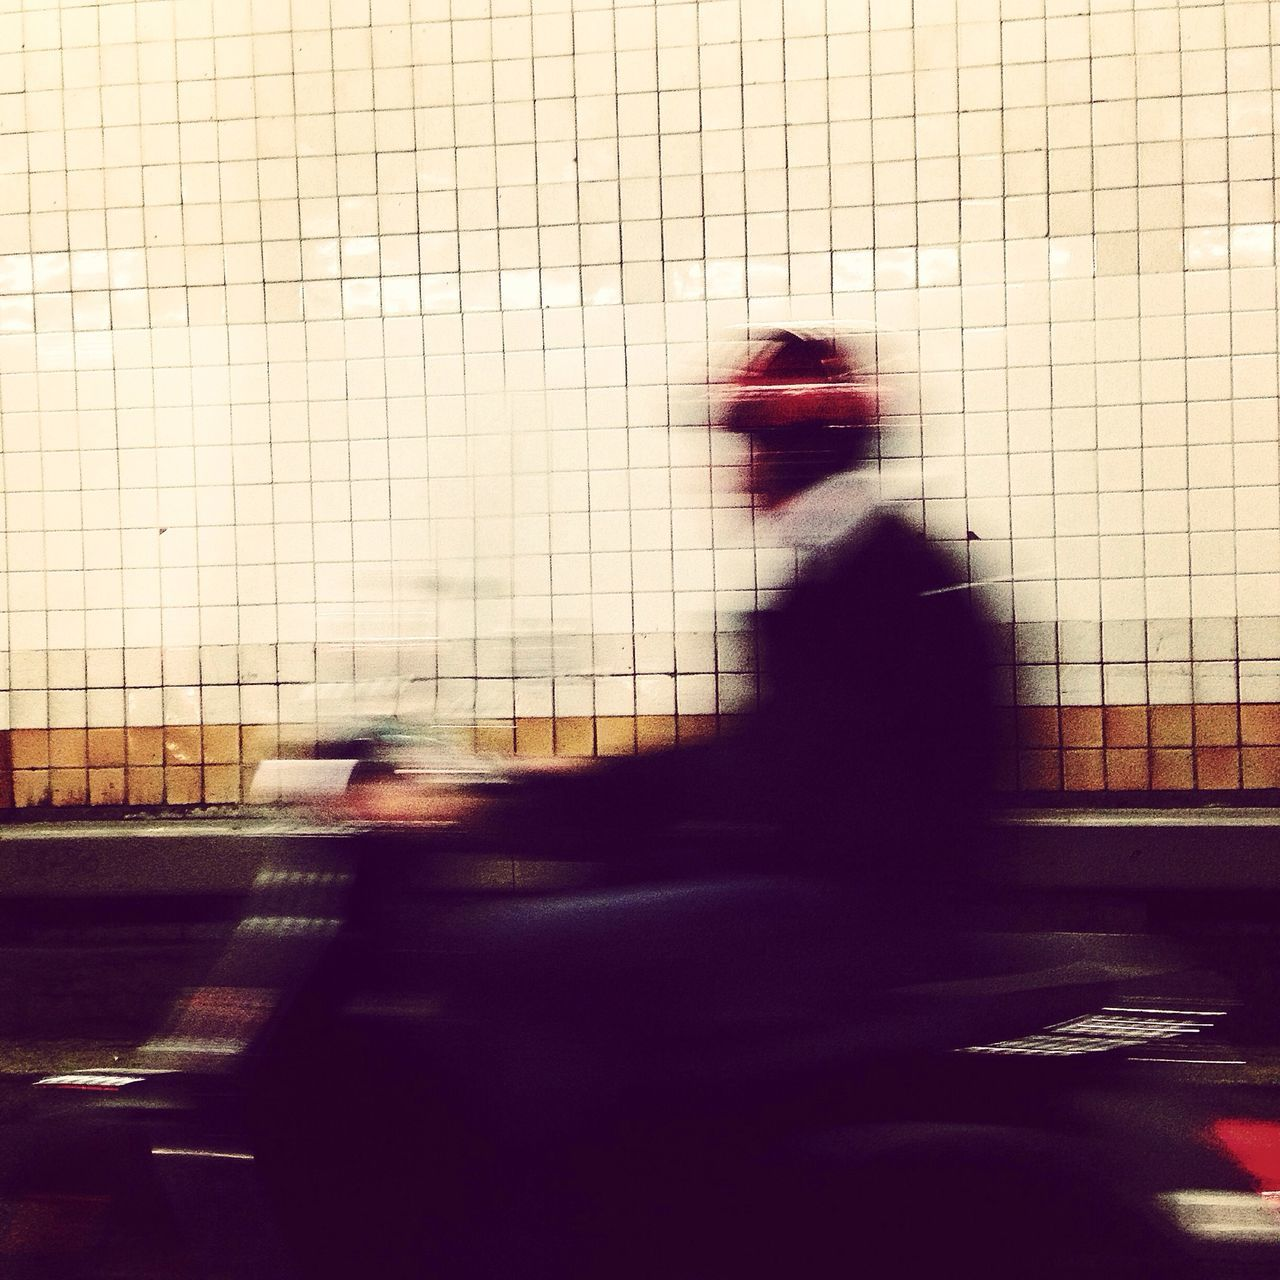 Blurred Image Of Man Riding Motor Scooter In Tunnel